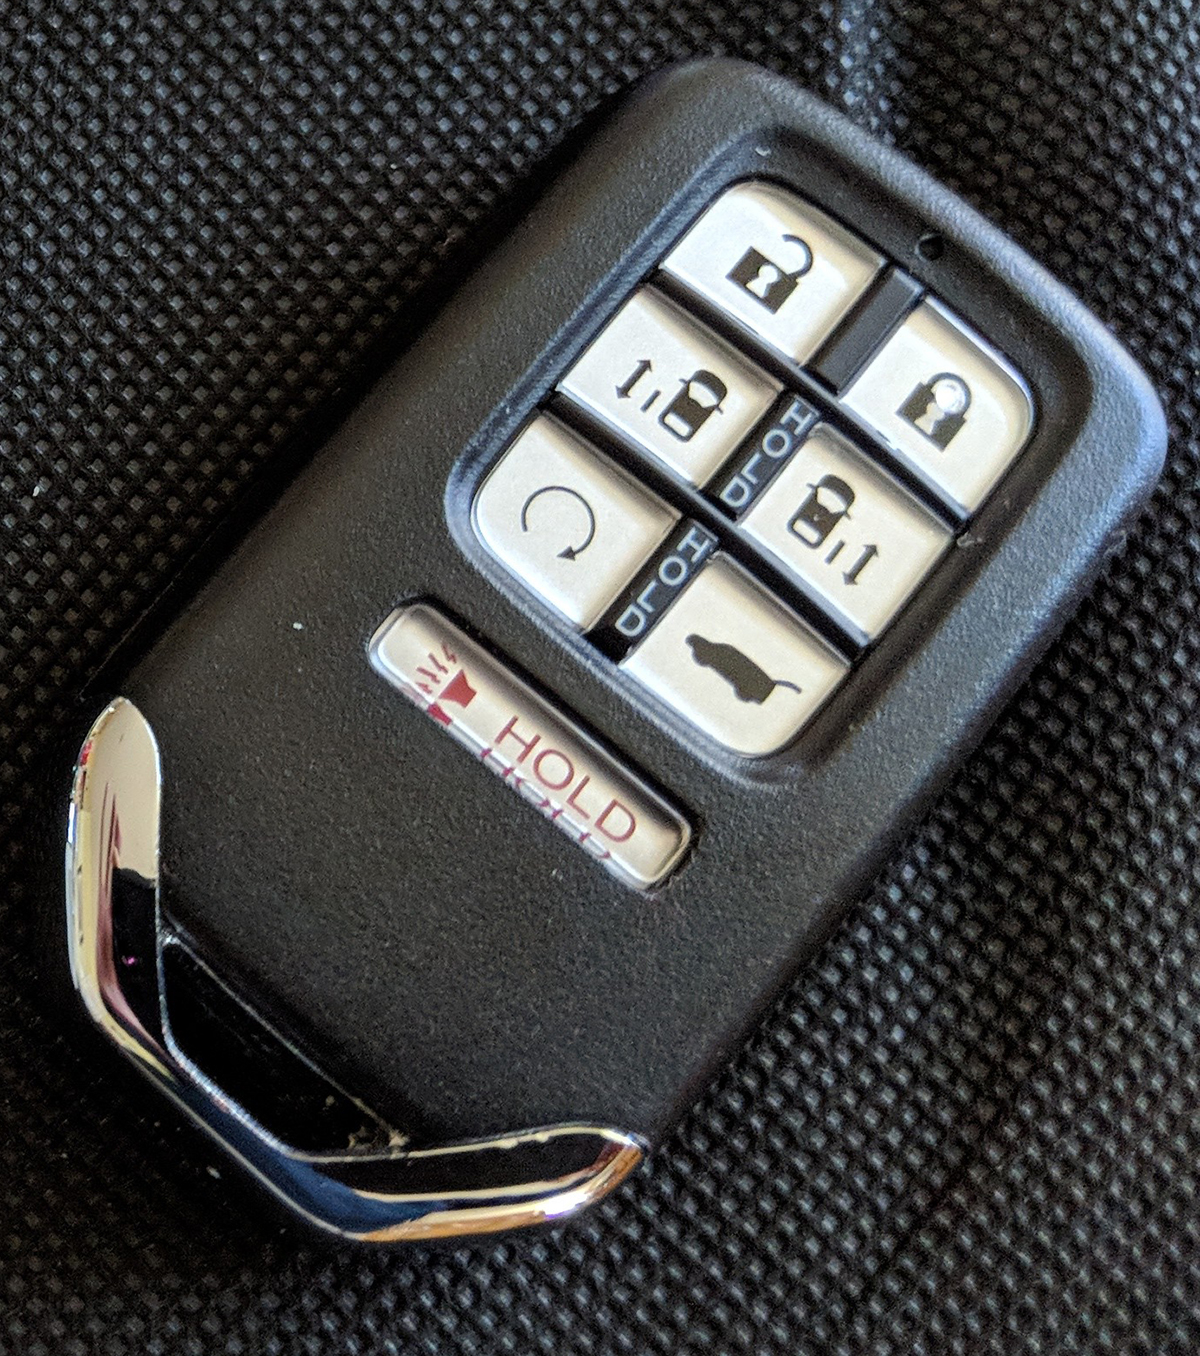 how to open a honda odyssey remote